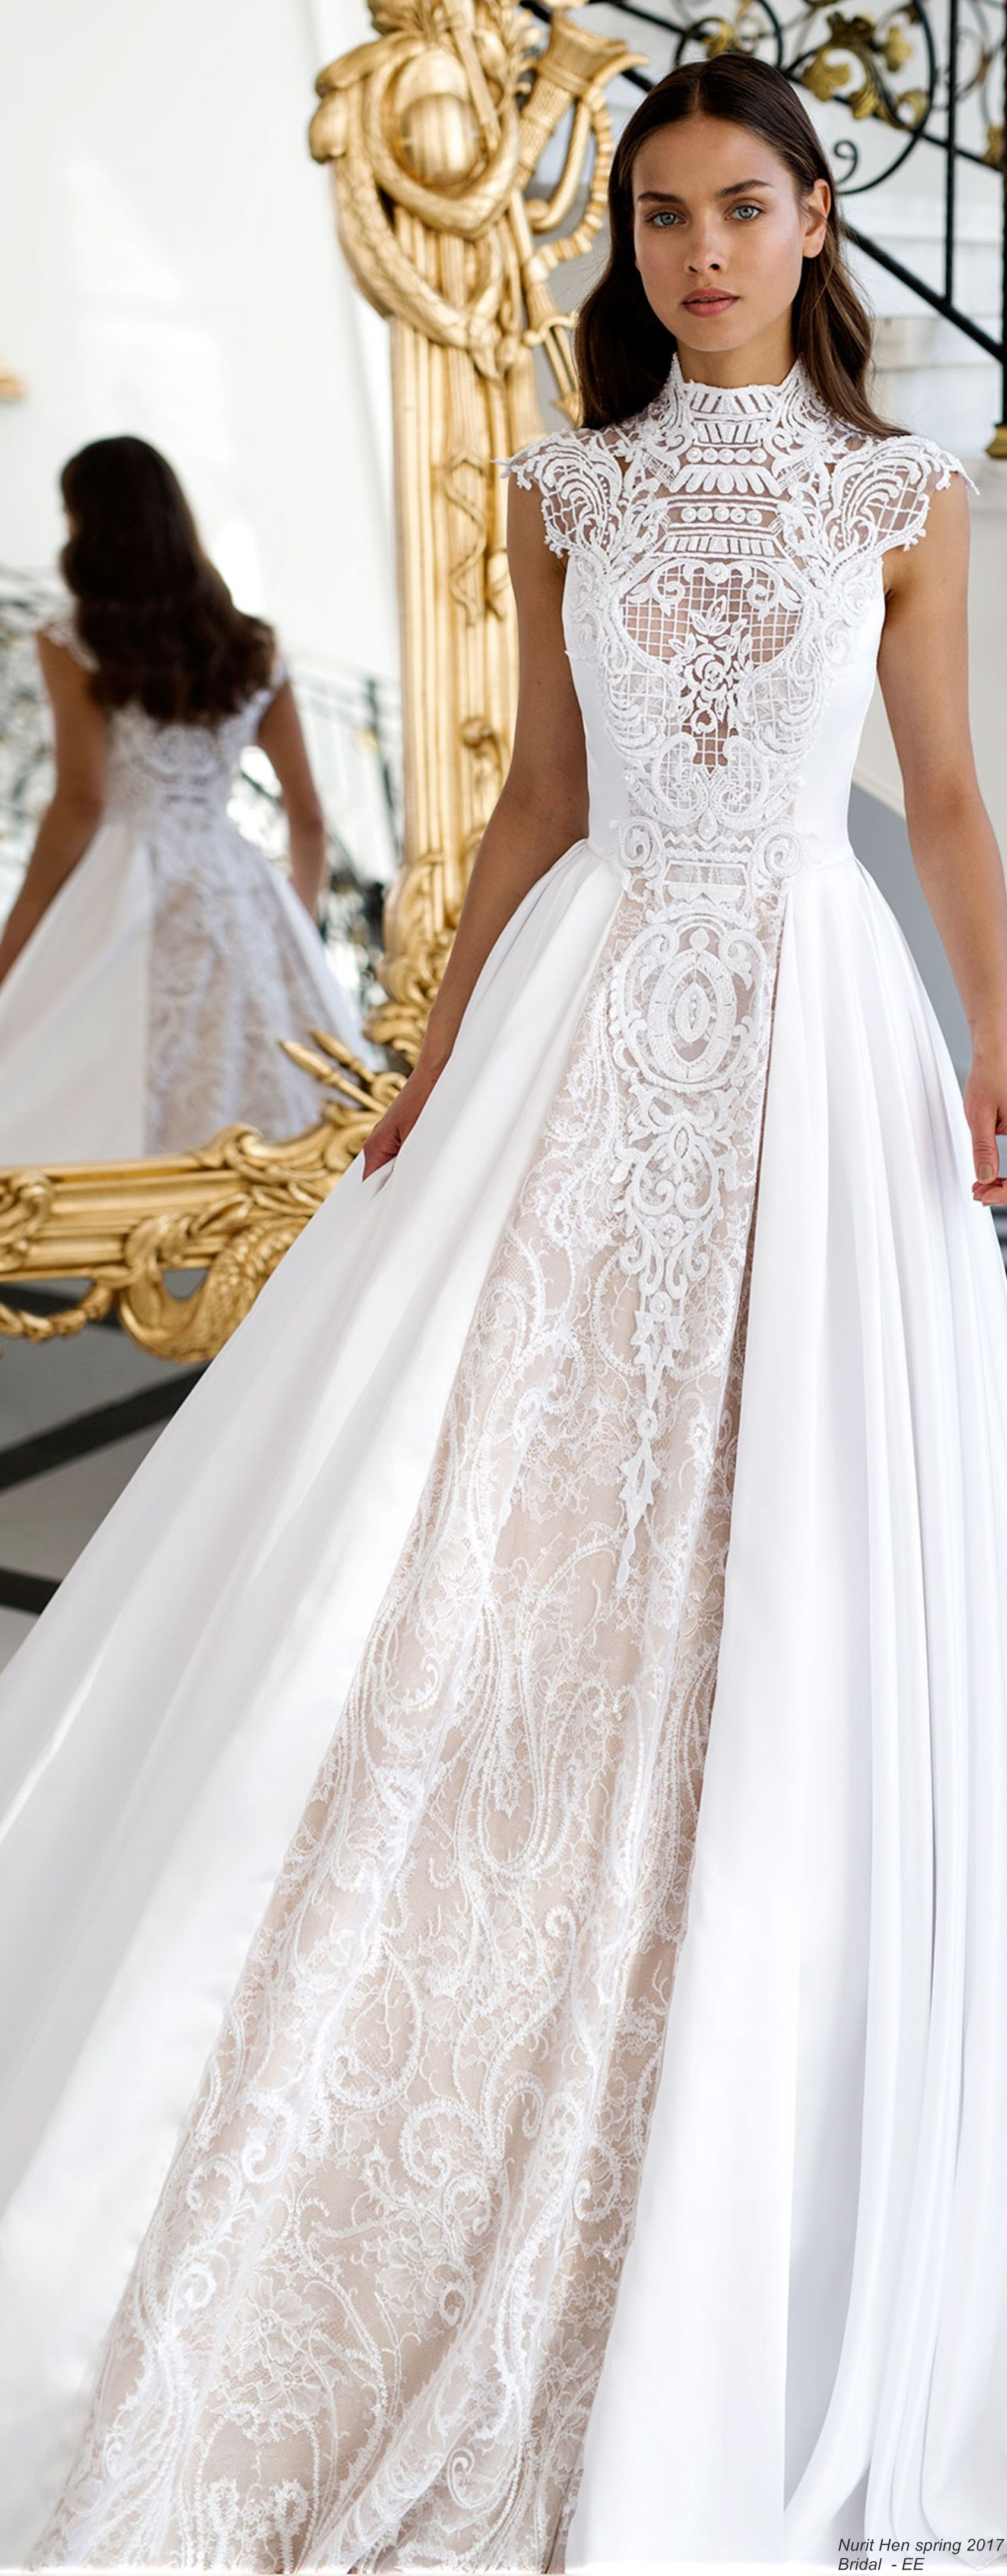 popular wedding dresses in 2016 part 1 ball gowns a lines